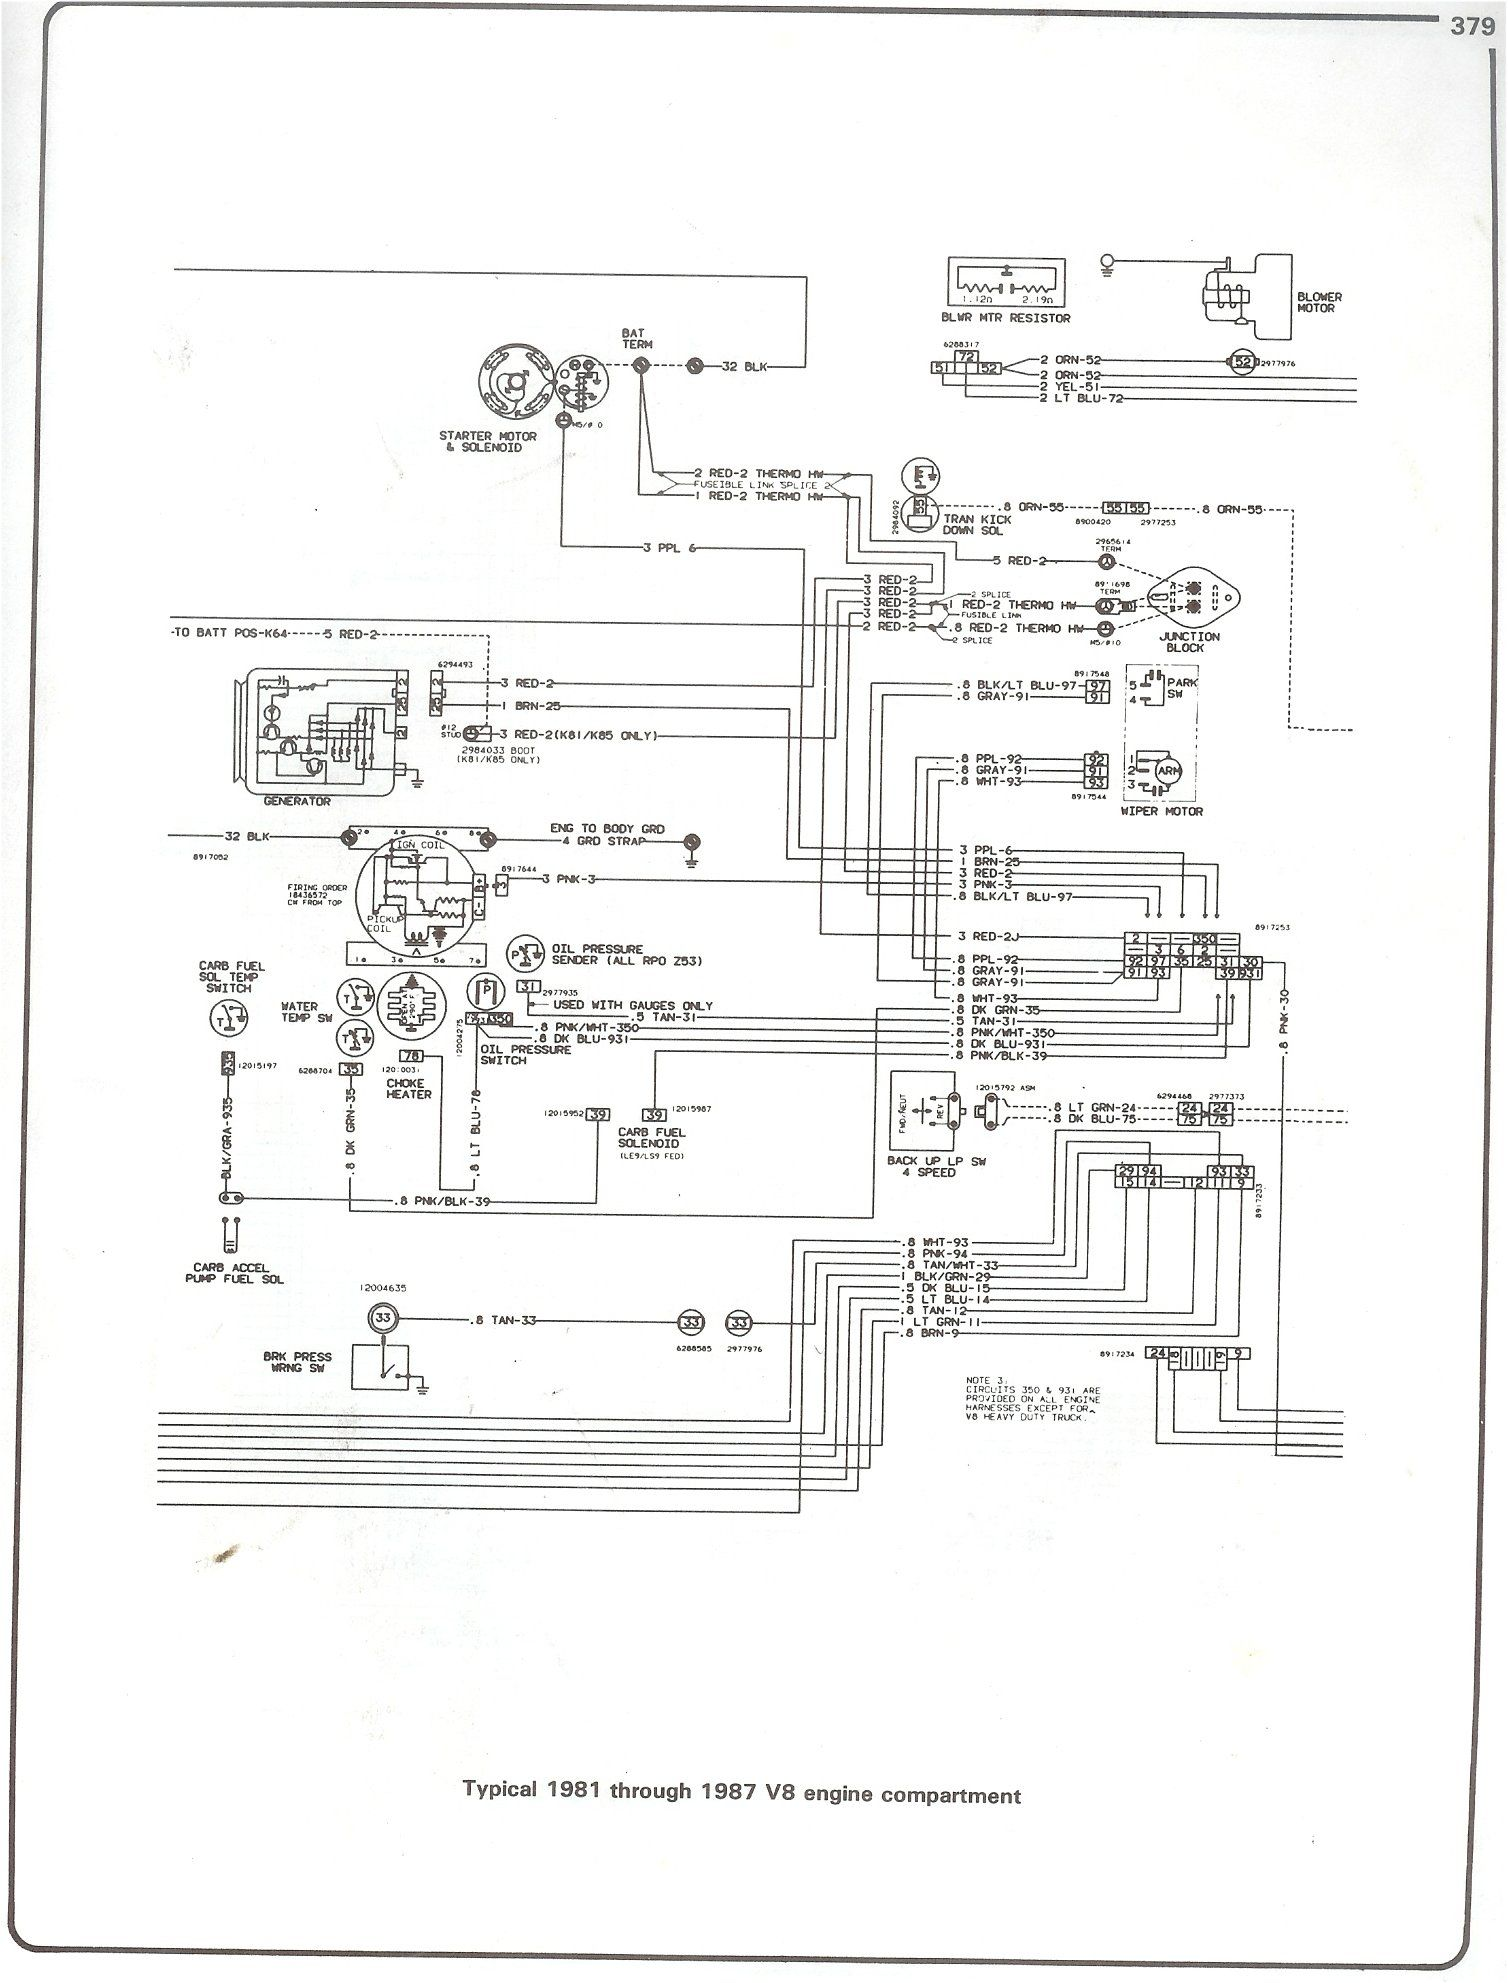 Pin By Malcolm Cail On Projects To Try Pinterest Trucks Chevy Ride Tech Wiring Diagram 85 Truck Http 73 87chevytrucks